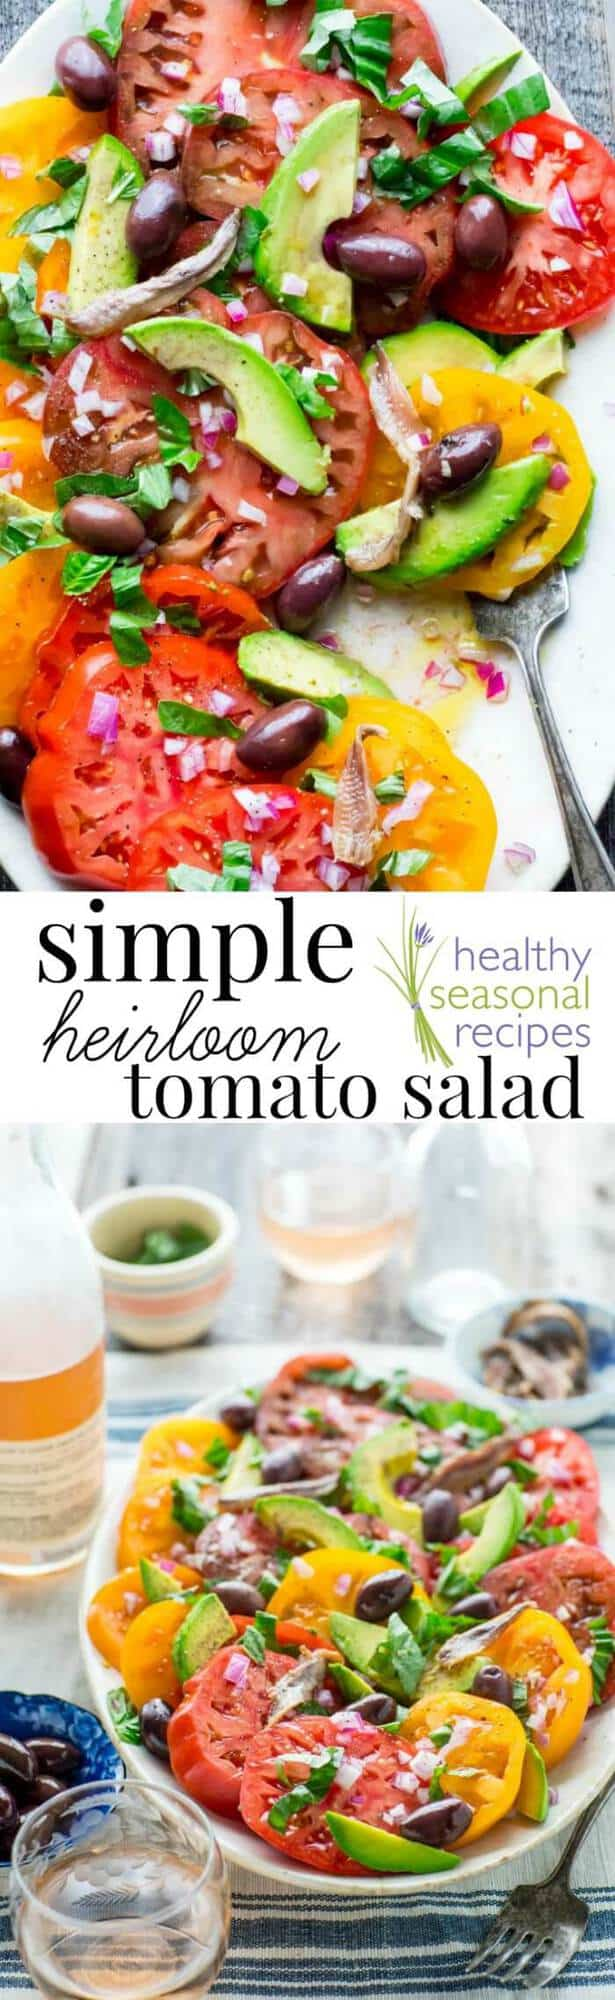 Here is an easy-going recipe for a simple tomato salad with anchovies, basil, olives and avocado. It's a healthy and simple side-dish to share with friends and family or to bring to a picnic or barbecue. It is paleo and dairy-free and ready in only 10 minutes!  Healthy Seasonal Recipes by Katie Webster | #tomato #salad #summer #paleo #dairyfree #healthy #sidedish